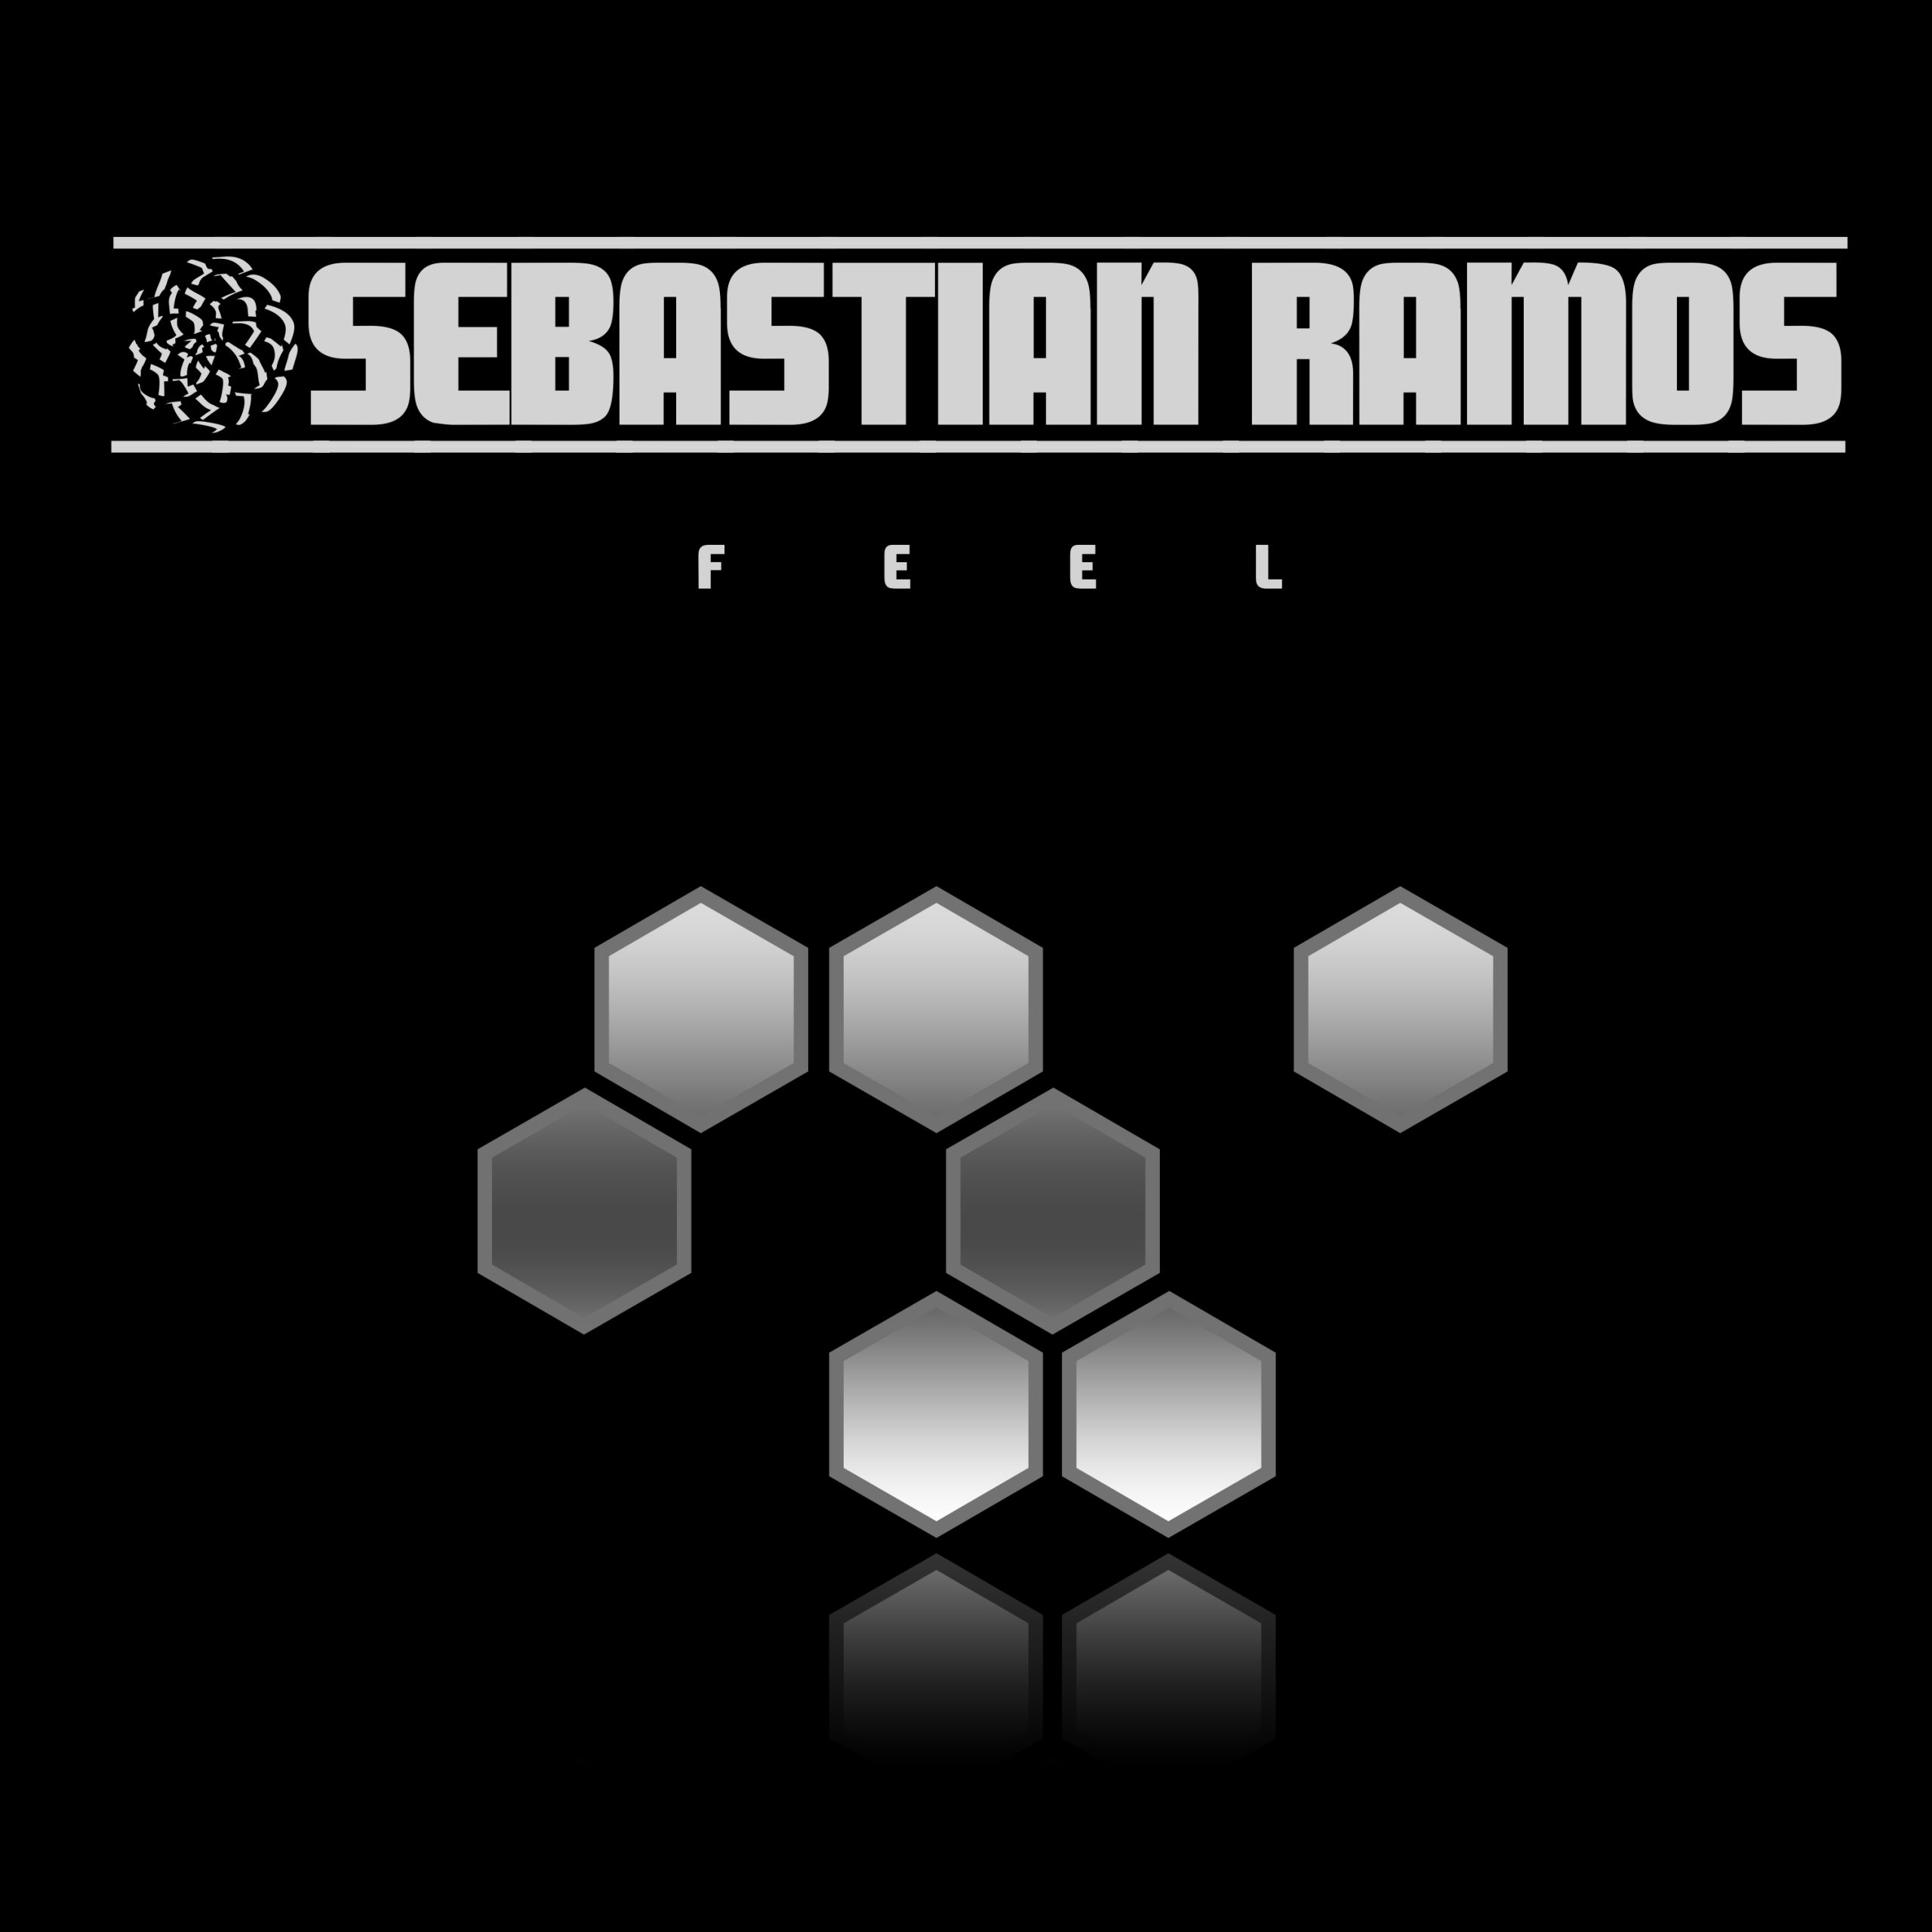 http://www.amsterdamtalkrecords.net/wp-content/uploads/2021/02/Sebastian-Ramos-feel-EXPORT-scaled.jpg